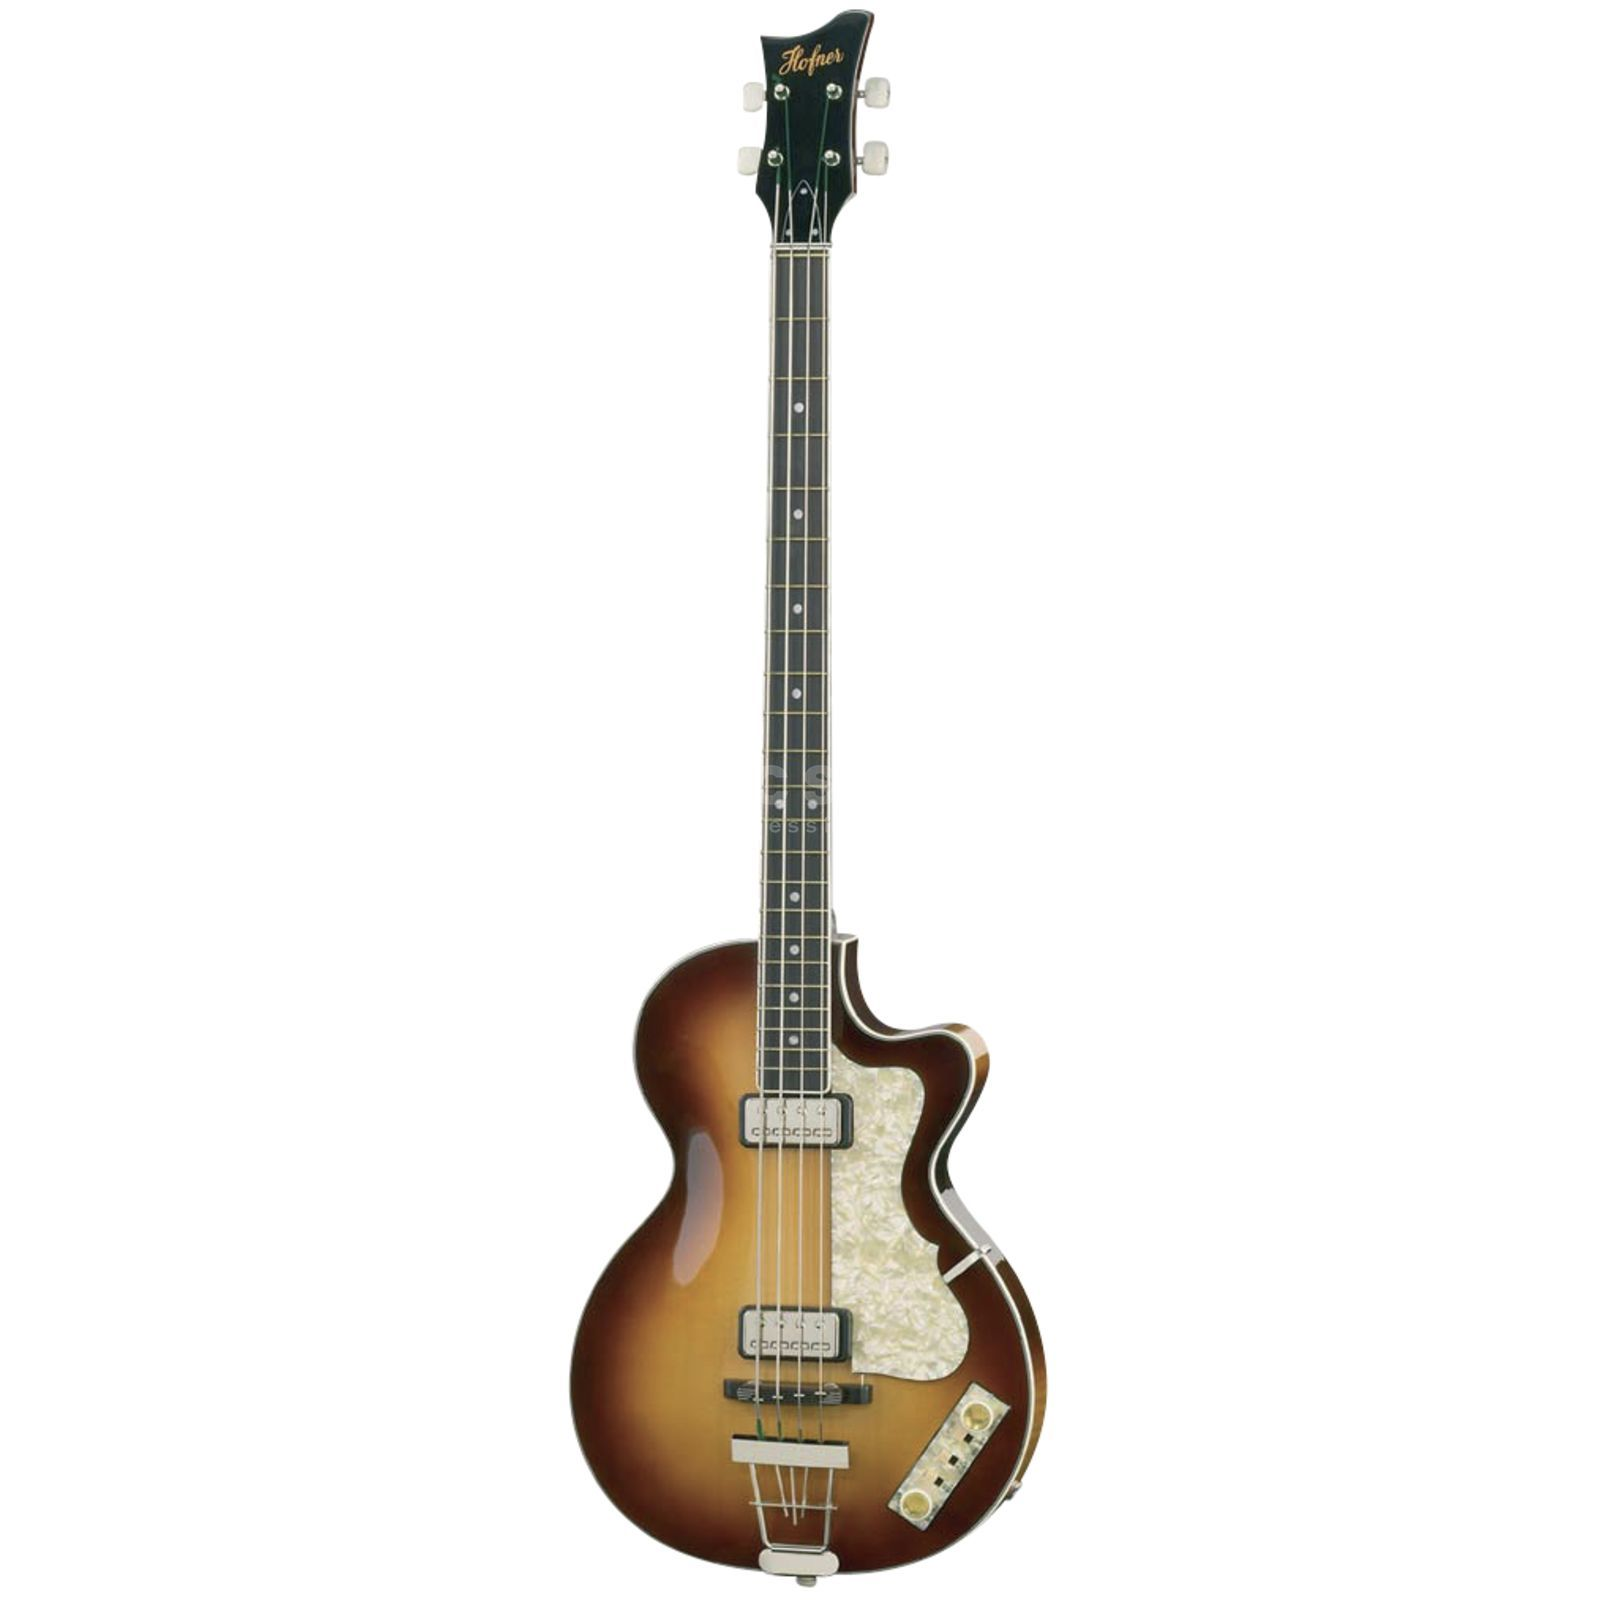 Höfner 500/2 Club Bass Ant. Sunburst incl. Case Product Image